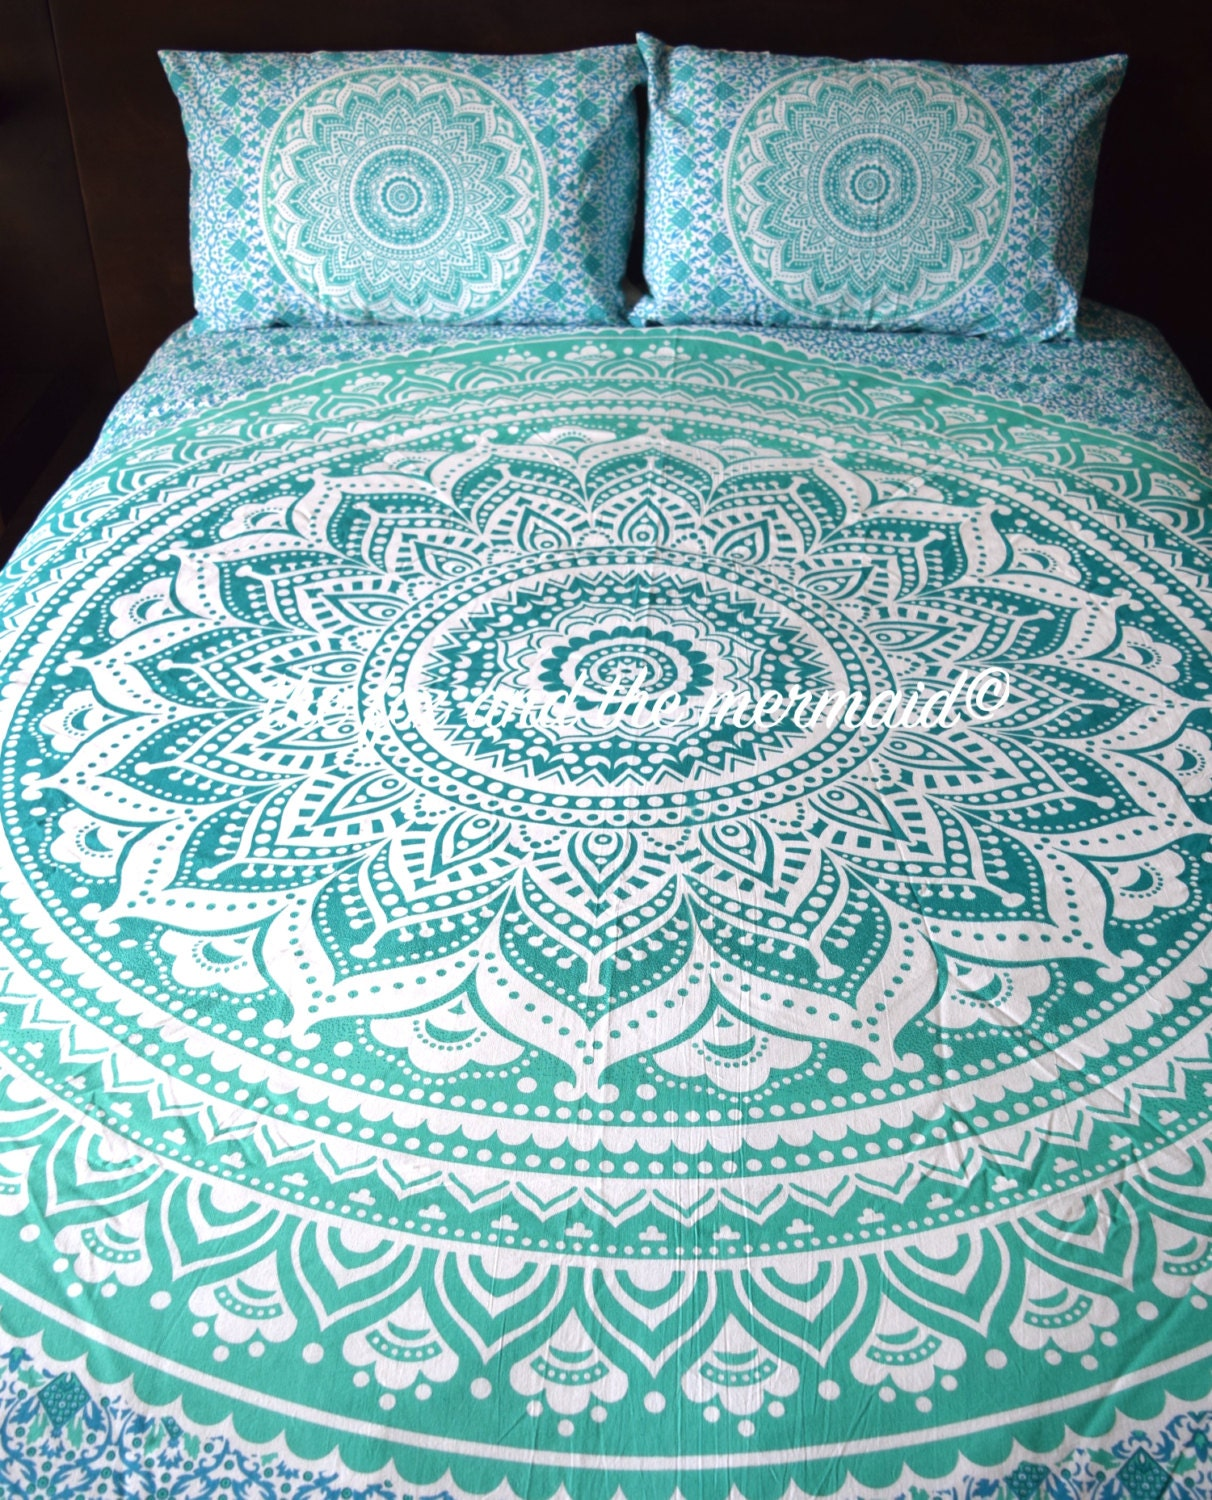 vikingwaterford bordered print set unique lamp woven ombre com pillow natural designs page matching table comforter beach twin themed coastal white funky bedroom base headboard floral blue with xl glossy night bue bedding stand